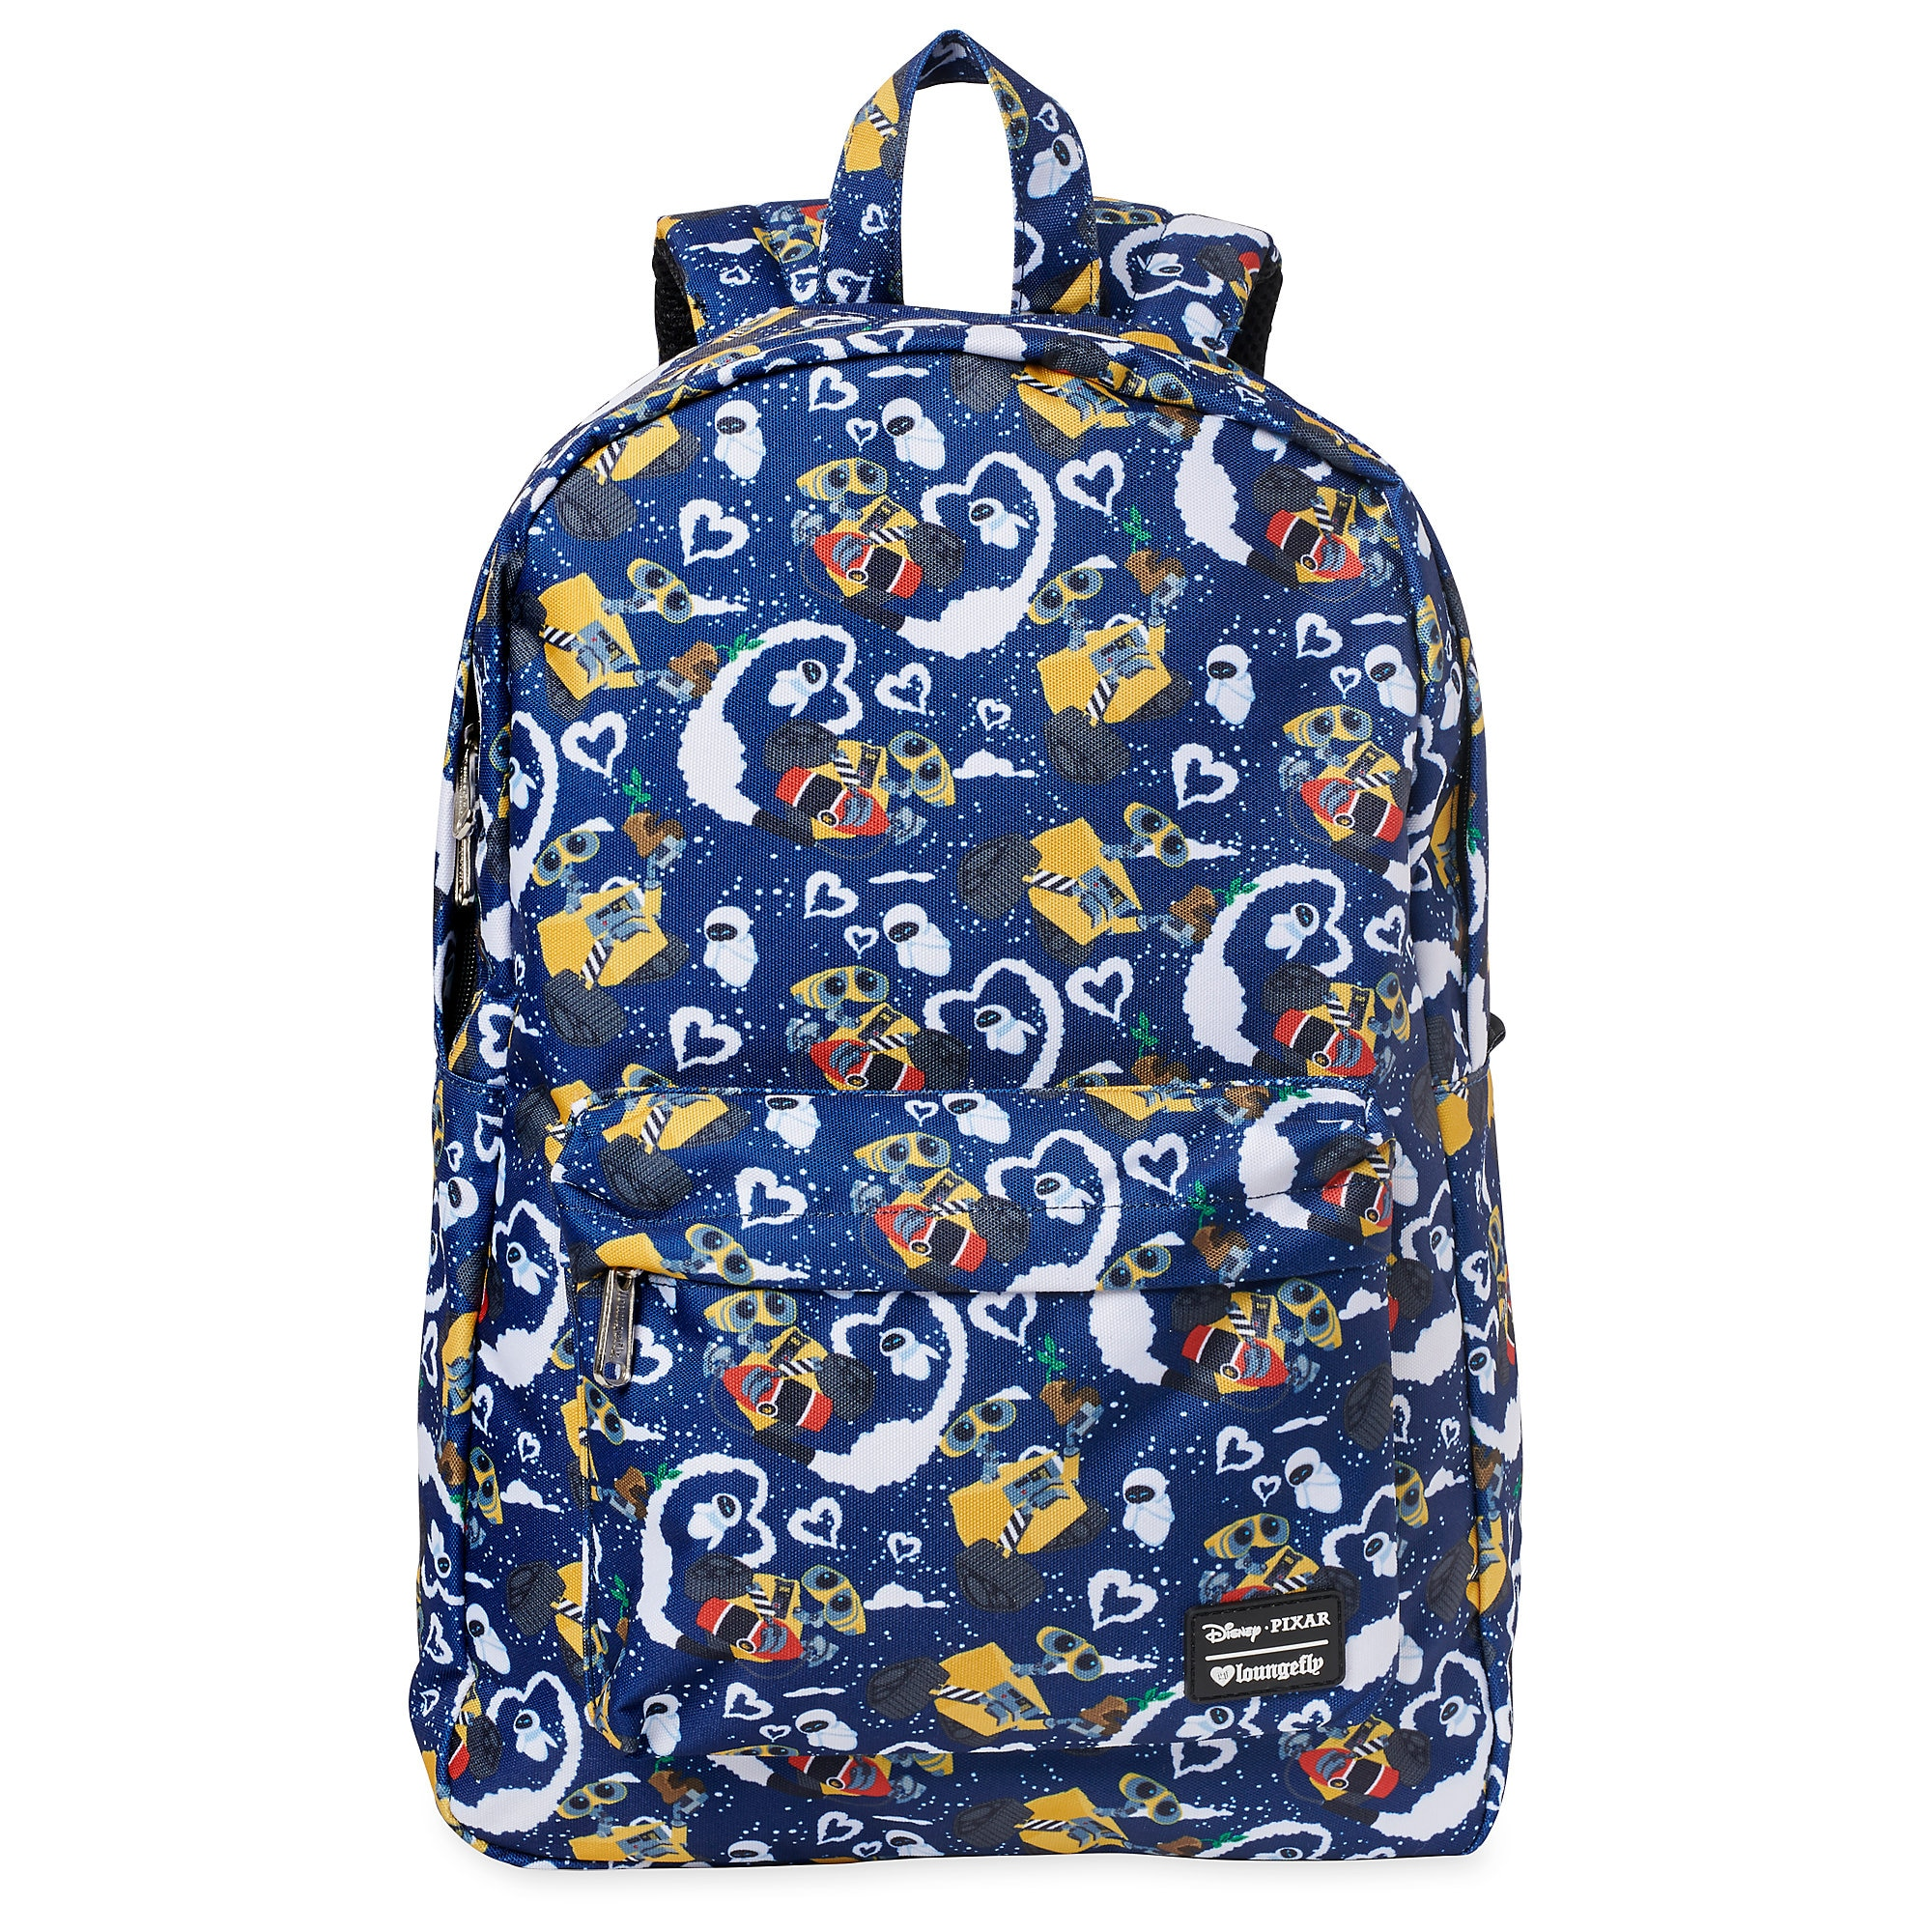 WALL•E and EVE Backpack by Loungefly